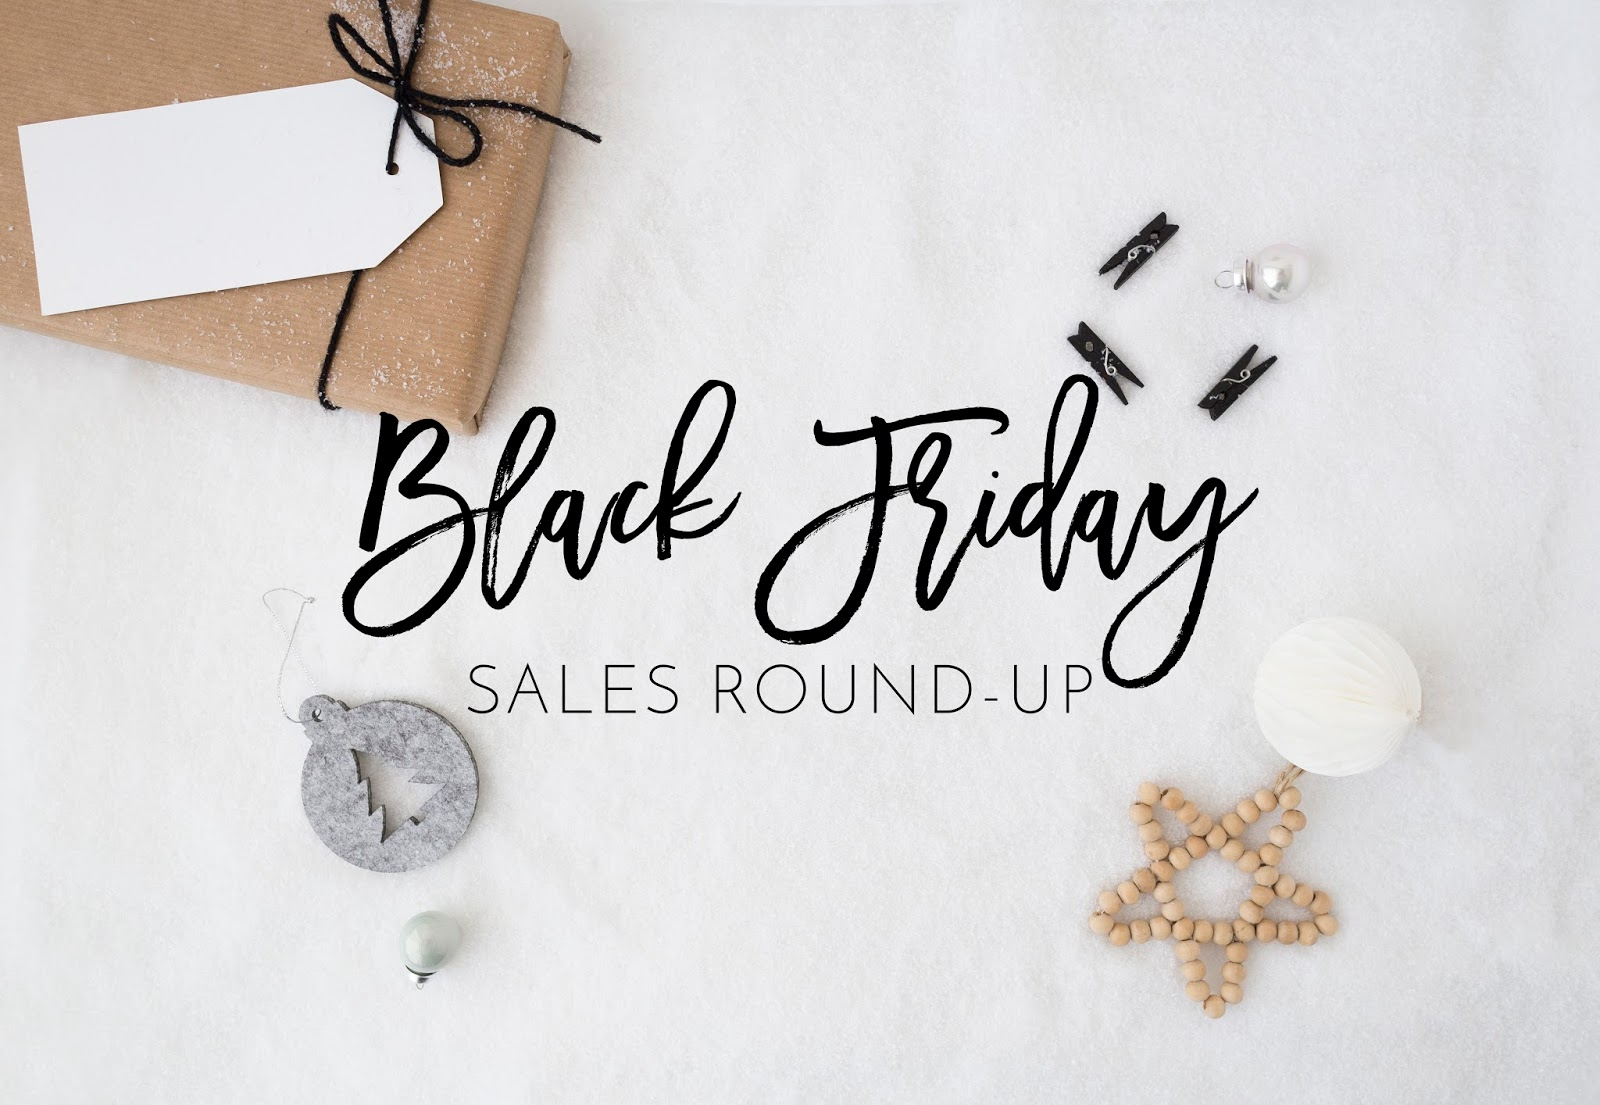 Black Friday Sales Round-up